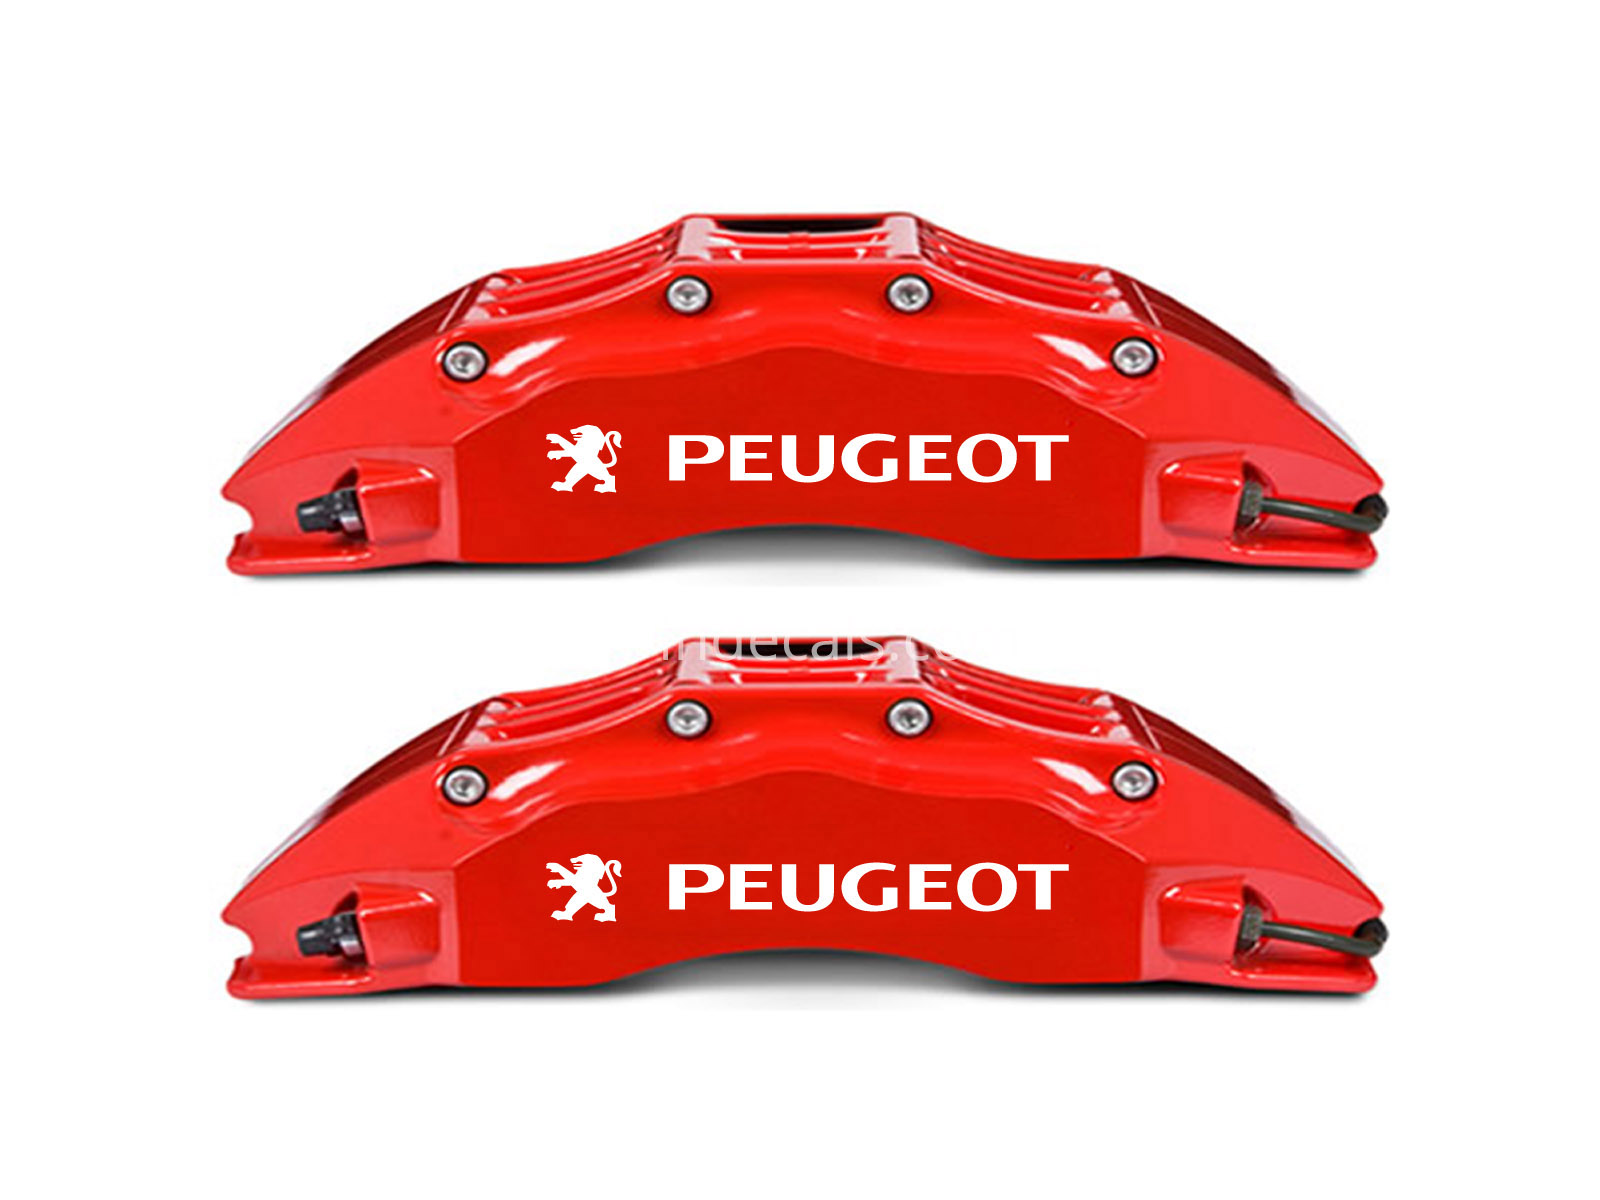 6 x Peugeot Stickers for Brakes - White